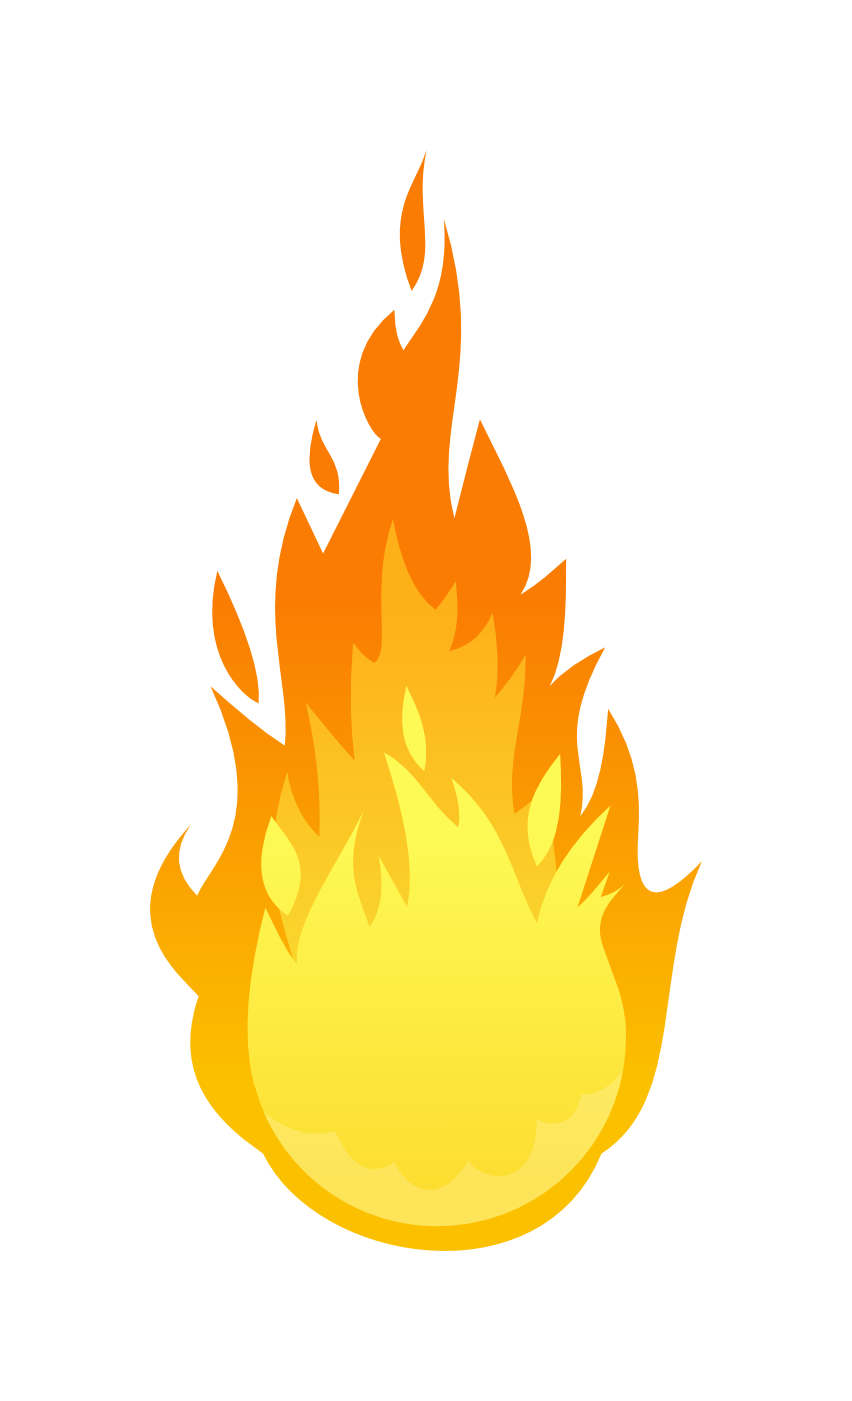 Flaming Fire Flame PNG Image